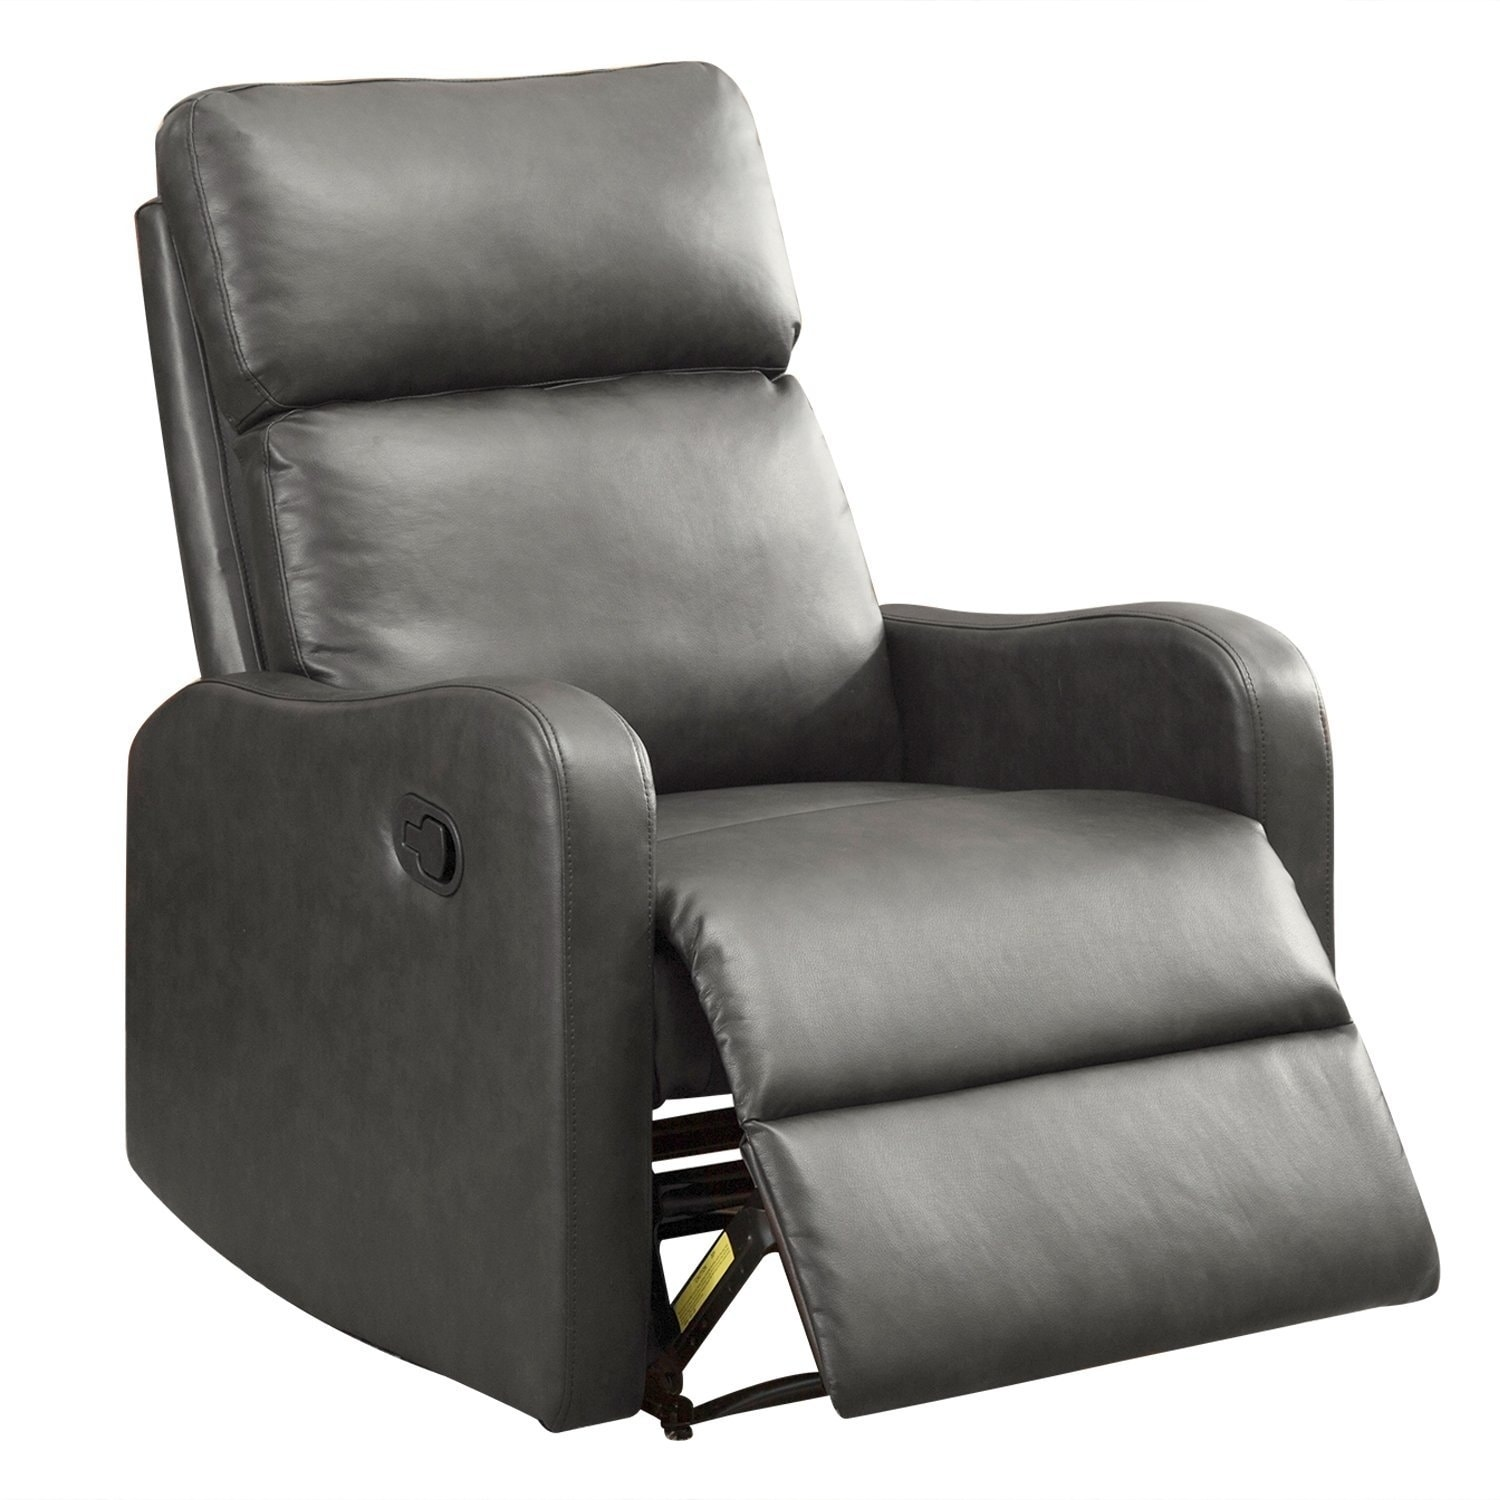 BONZY Recliner Chair Leather Recliner Chair Contemporary Dark Gray